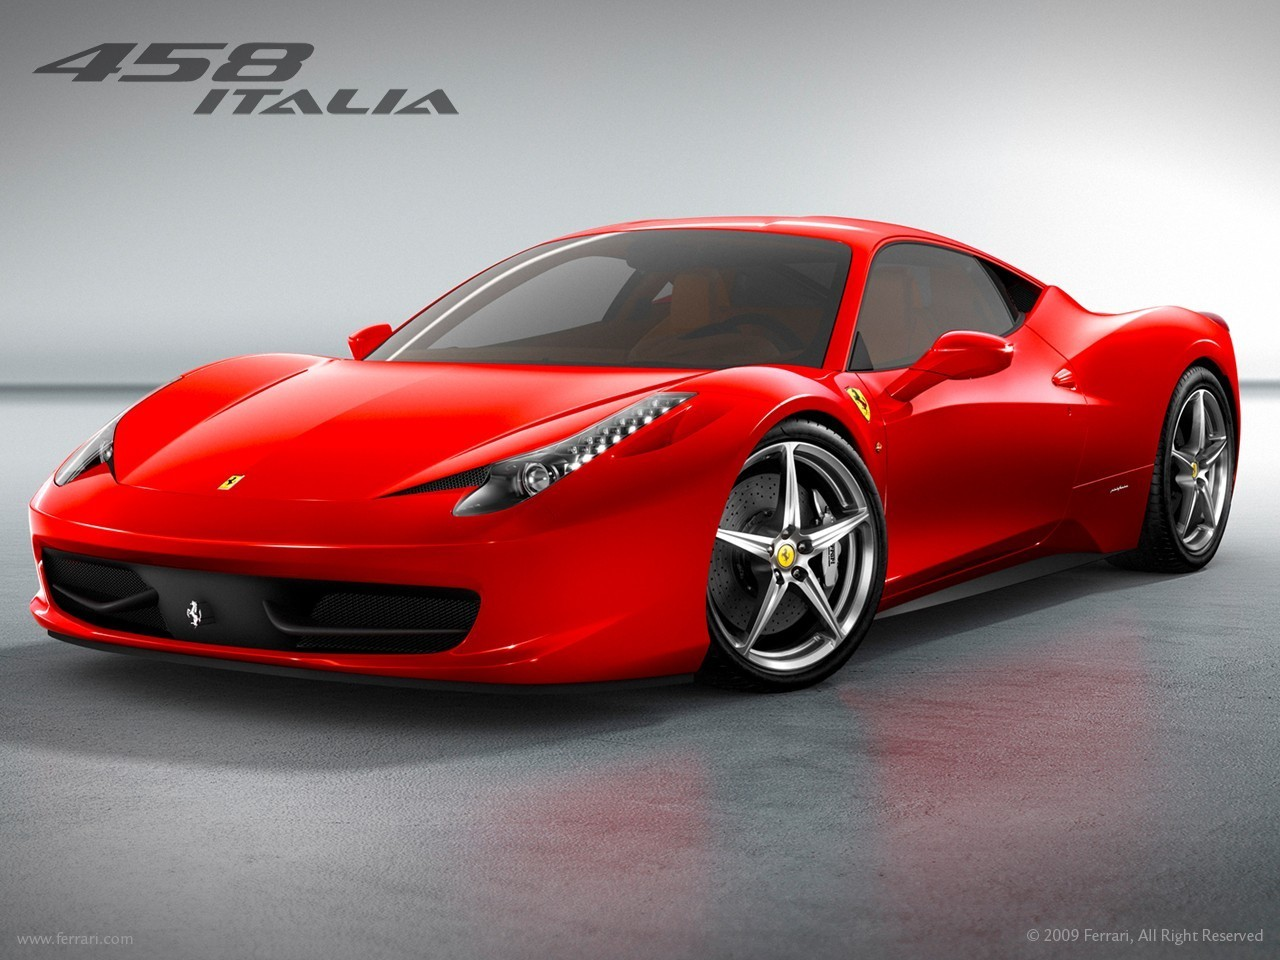 farrari - Sports Cars Wallpaper (13821367) - Fanpop fanclubssports cars